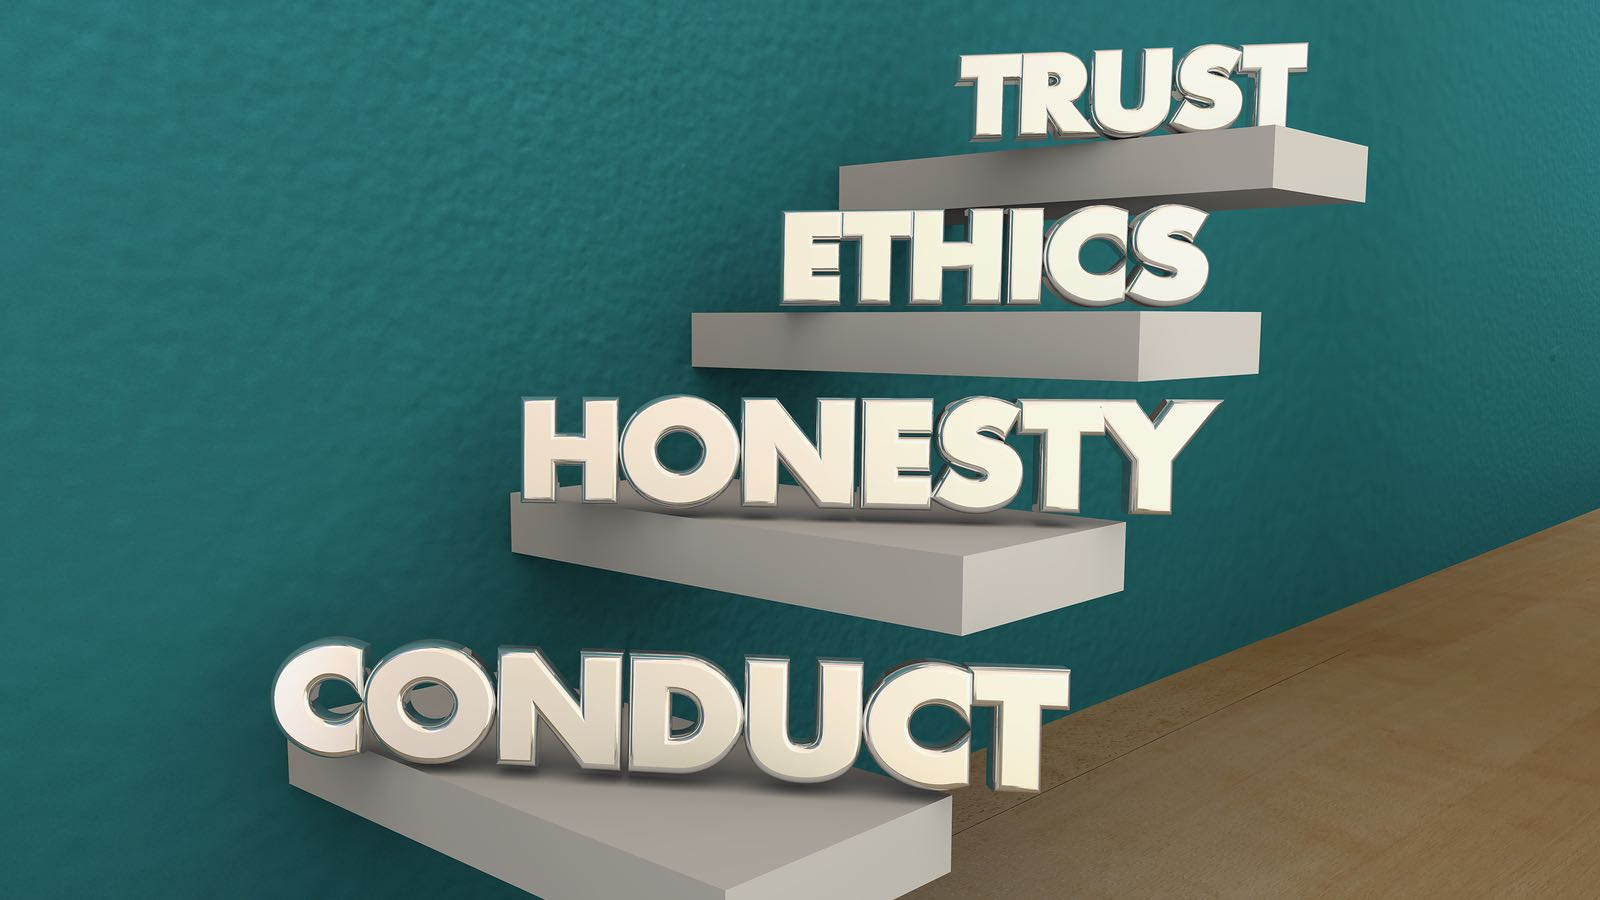 Ethical Principles and Values - Understanding principles and values that underpin your ethical decision making.